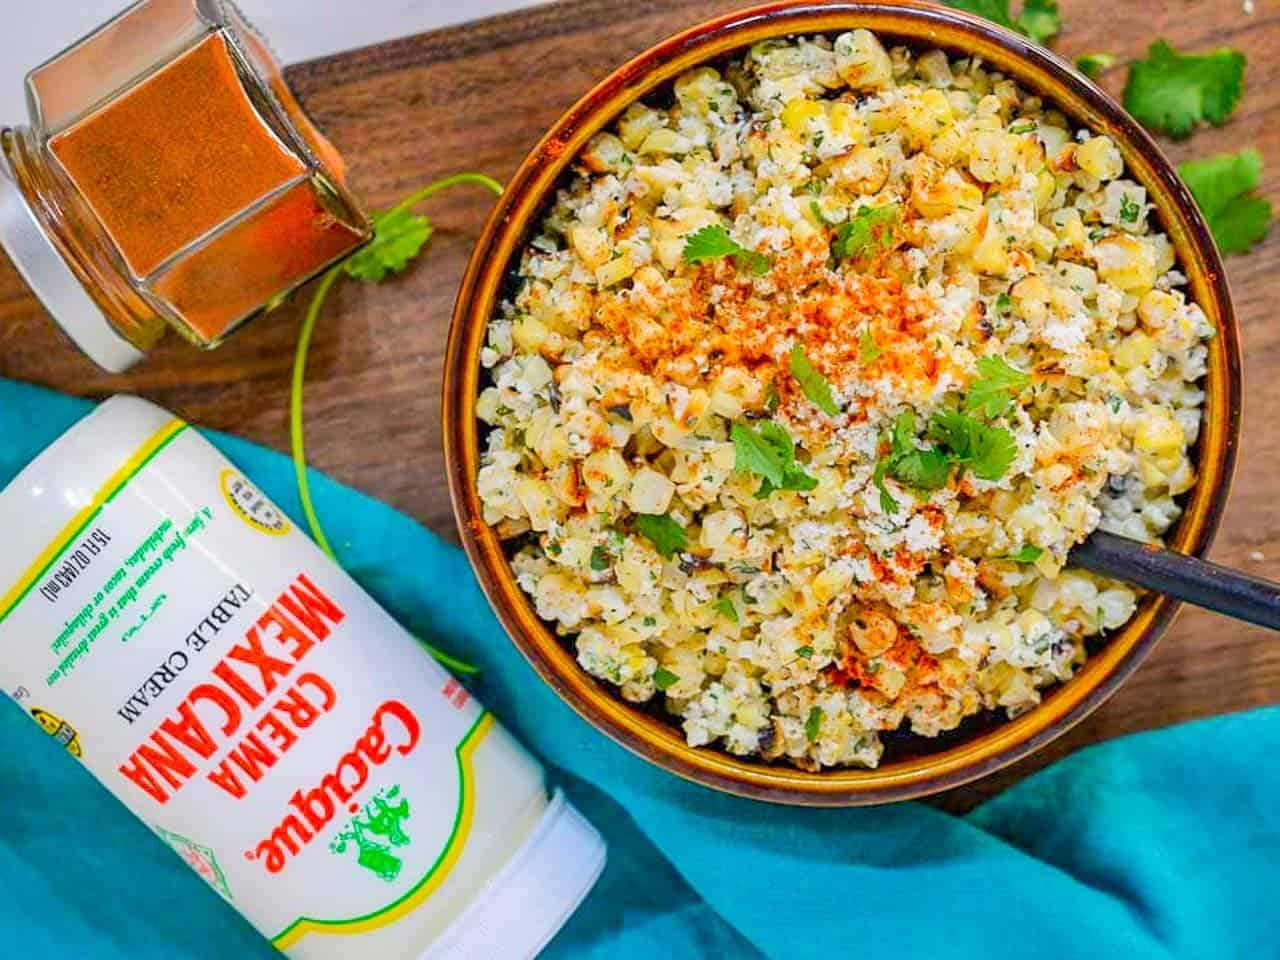 Mexican Corn Salad is a charred, buttered corn salad with a creamy dressing. AKA as Esquites - spicy, cheesy corn in a cup snack.